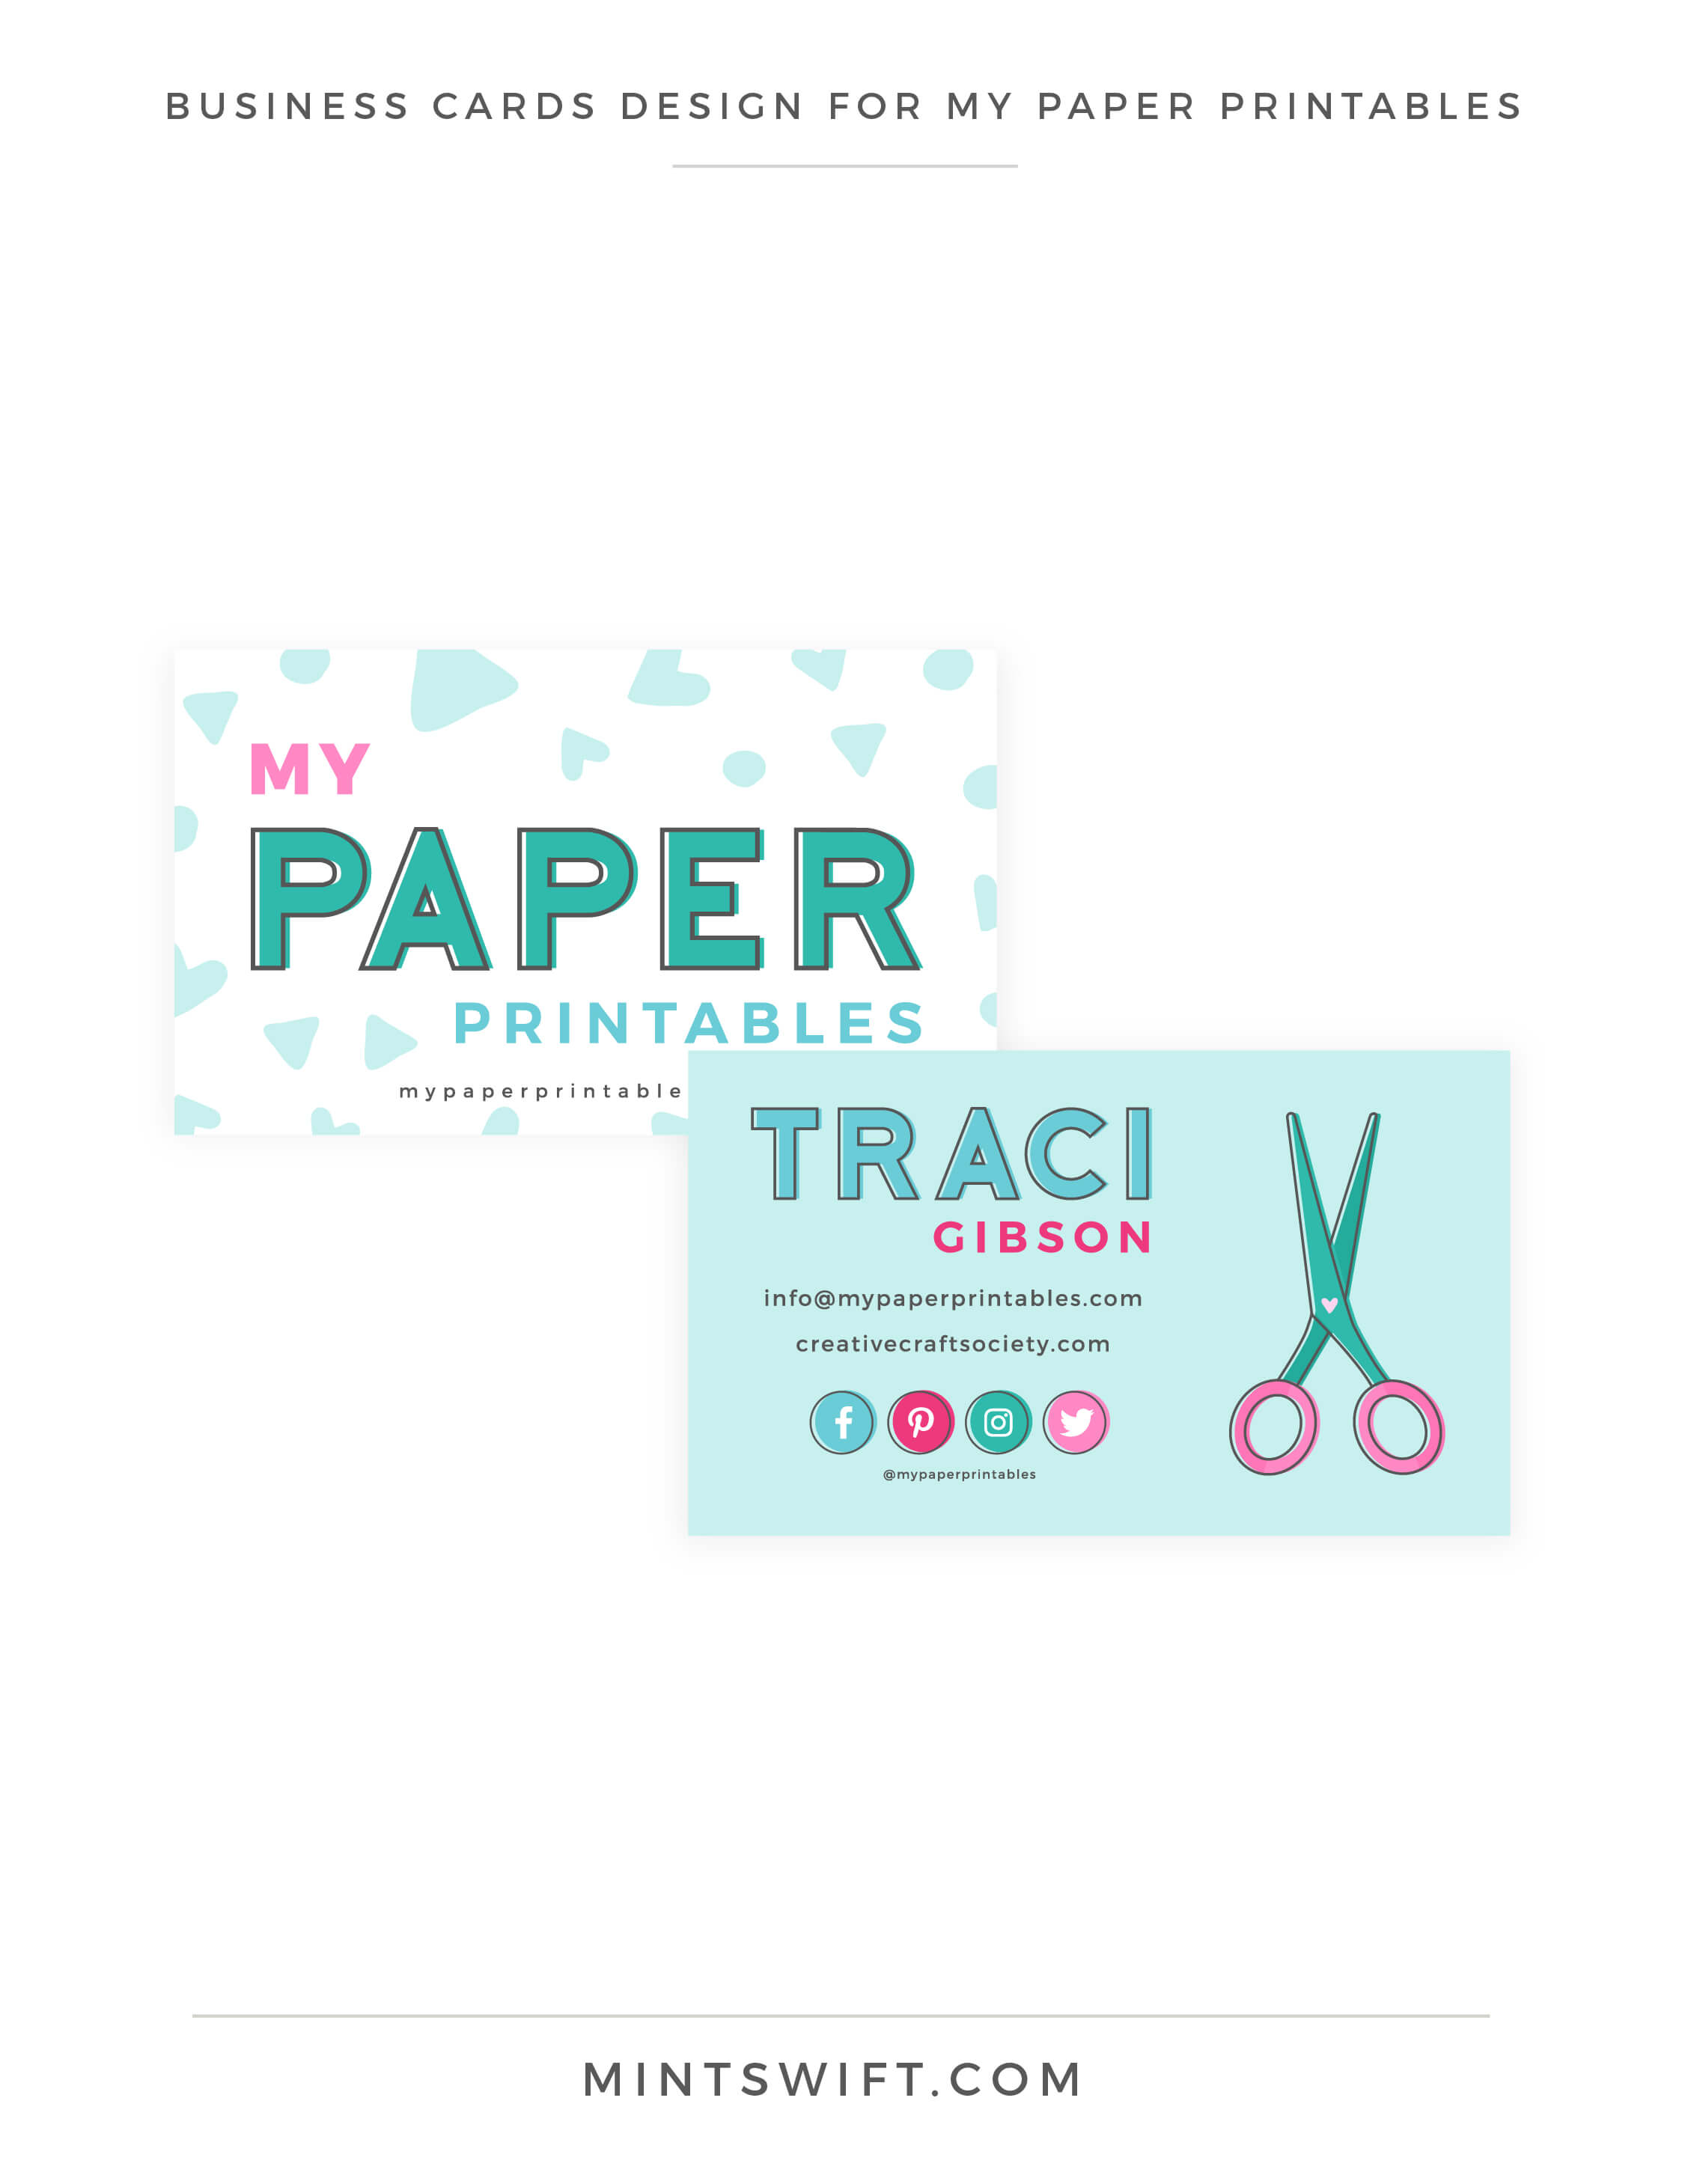 My Paper Printables - Business Cards Design - Brand Design - MintSwift